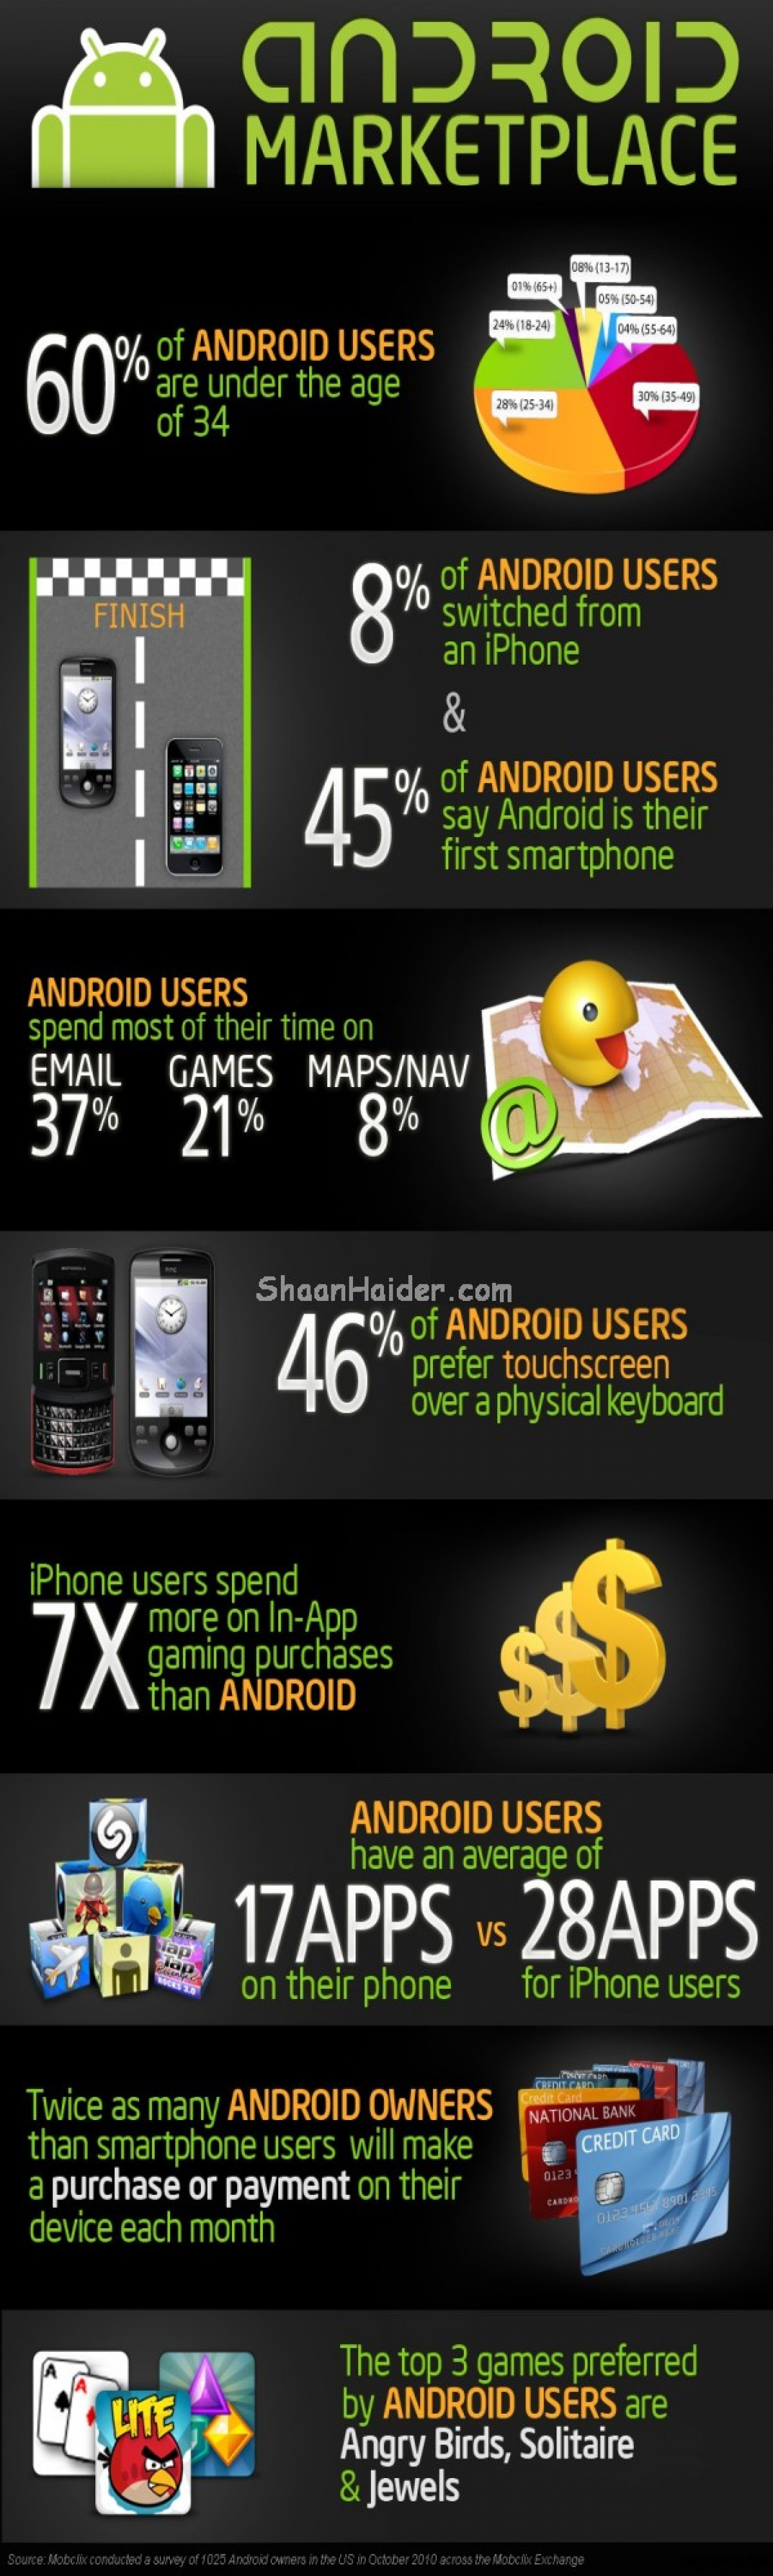 The Android Marketplace Infographic